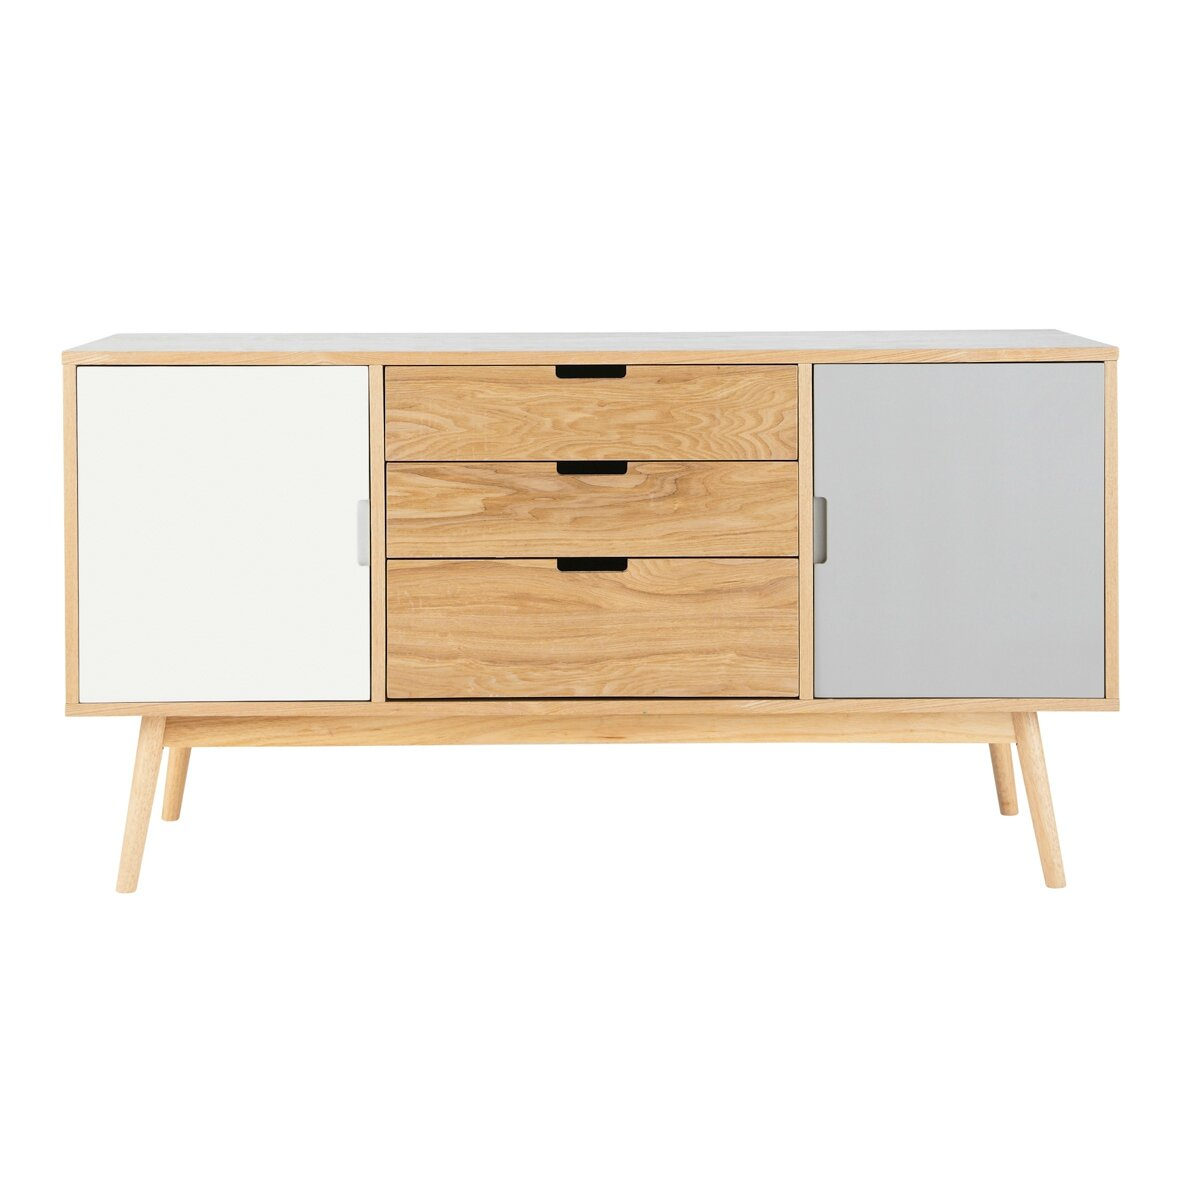 Meuble Tv Scandinave Maison Du Monde Urbantrott Com # Meuble Maison Decoration Tv